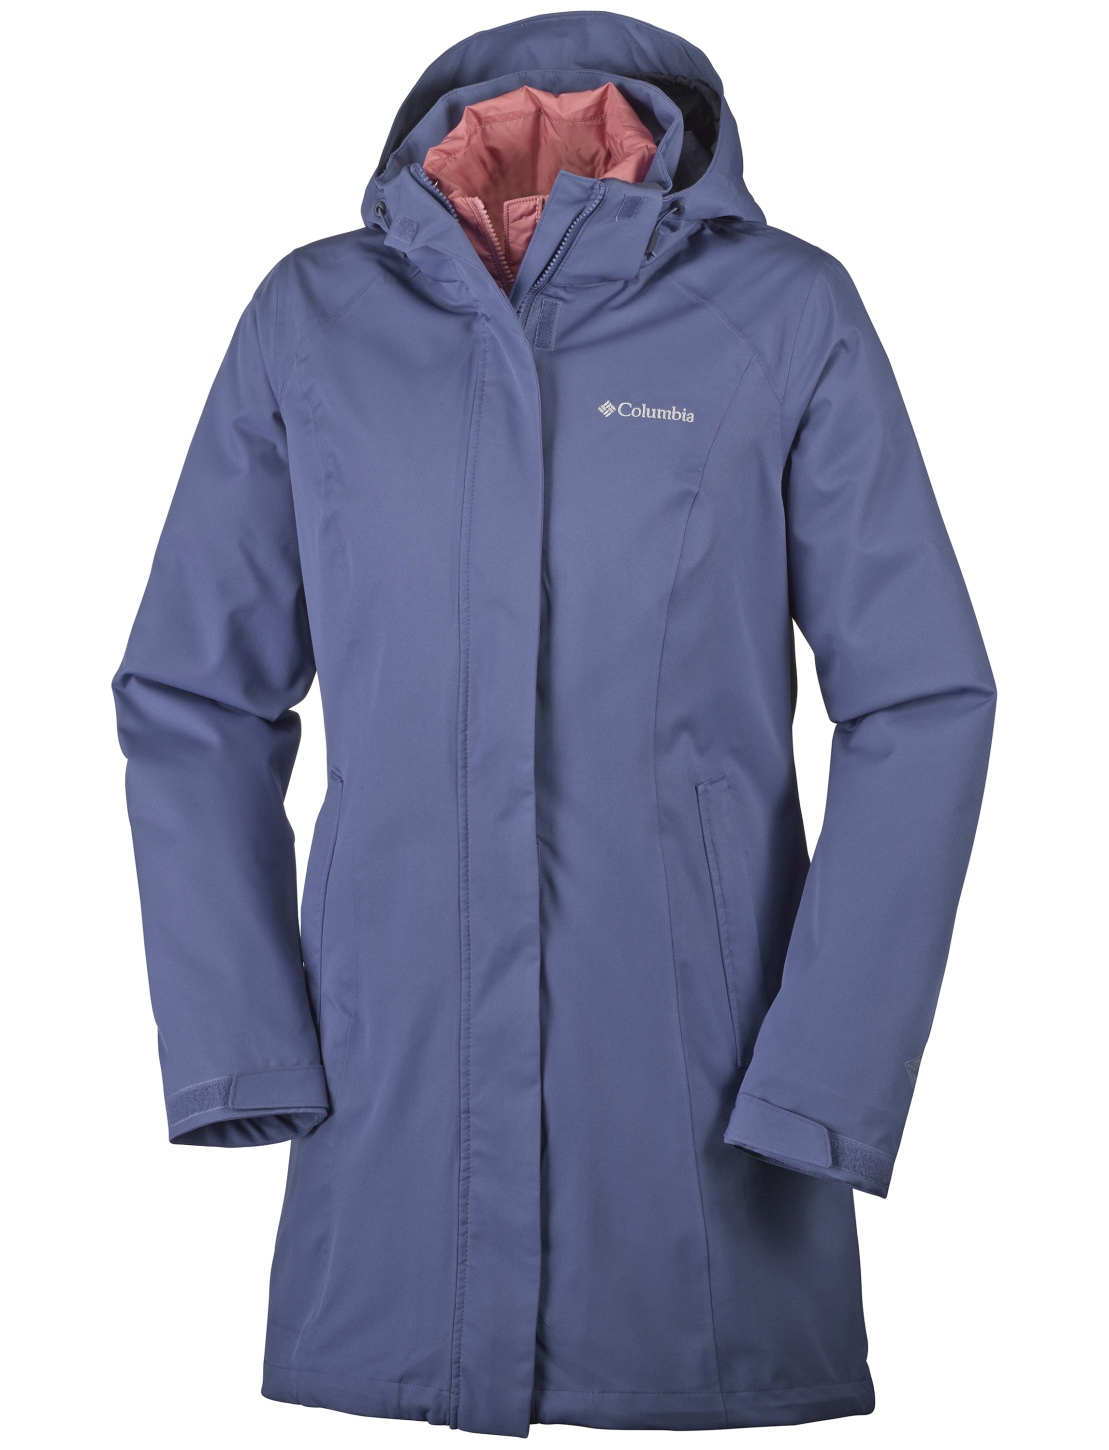 Columbia Women's Salcantay Long Interchange Jacket Bluebell-30